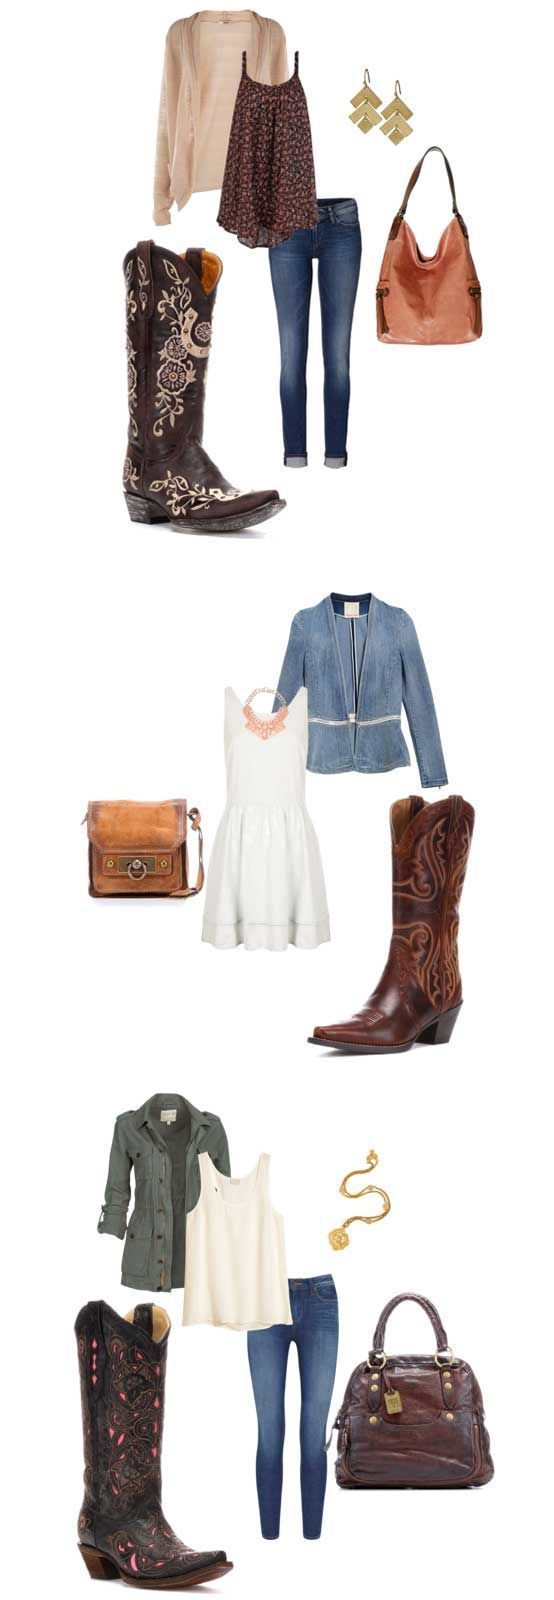 Vintage Cowboy Boots: Never a Passing Trend | Country Outfitter http://www.countryoutfitter.com/blog/vintage-cowboy-boots/